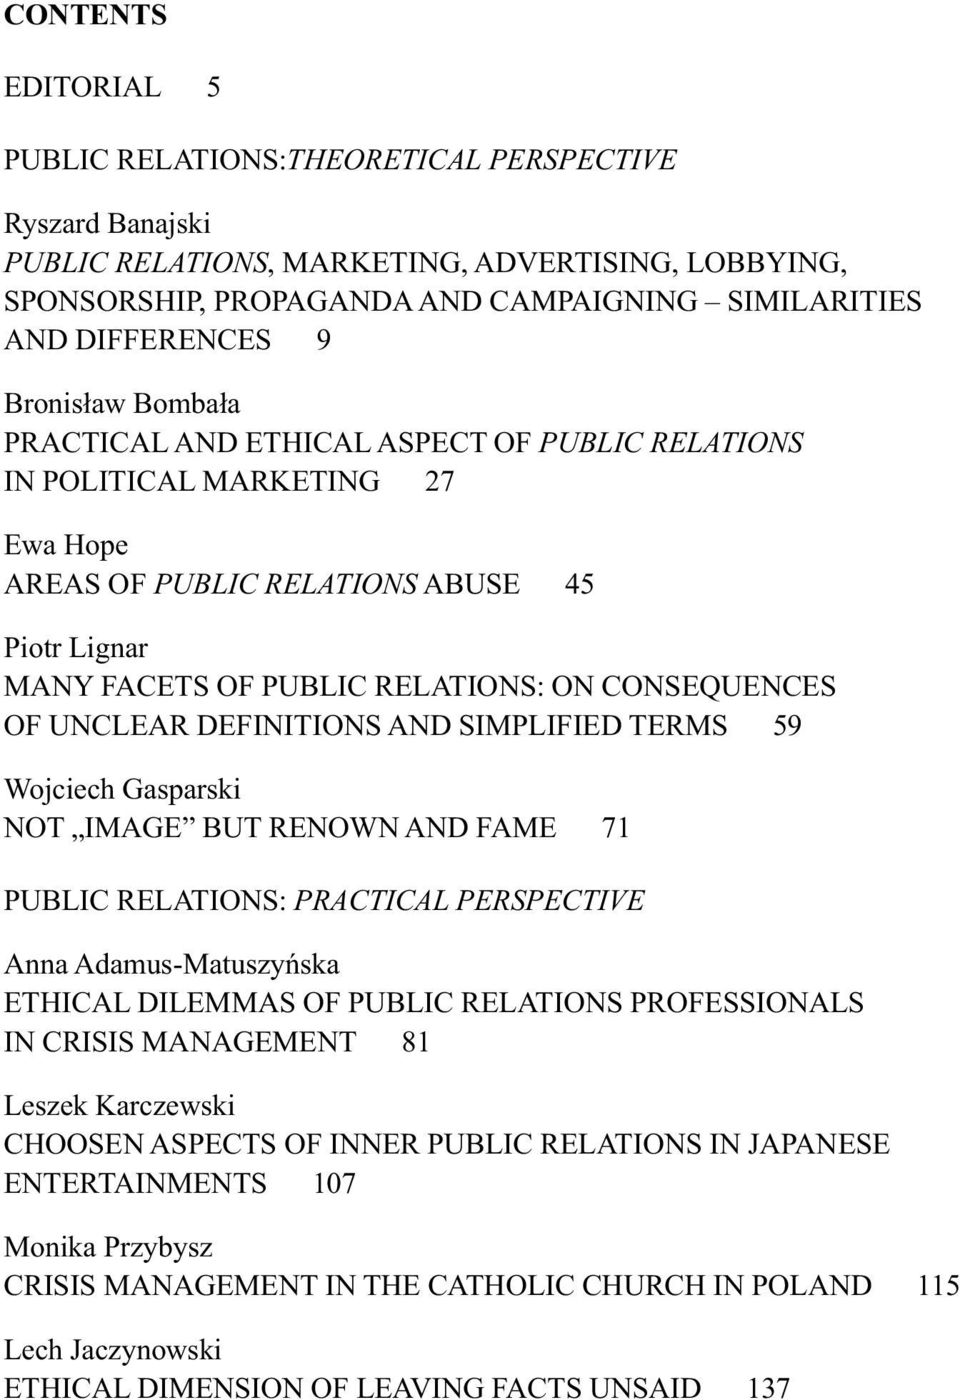 CONSEQUENCES OF UNCLEAR DEFINITIONS AND SIMPLIFIED TERMS 59 Wojciech Gasparski NOT IMAGE BUT RENOWN AND FAME 71 PUBLIC RELATIONS: PRACTICAL PERSPECTIVE Anna Adamus-Matuszyńska ETHICAL DILEMMAS OF